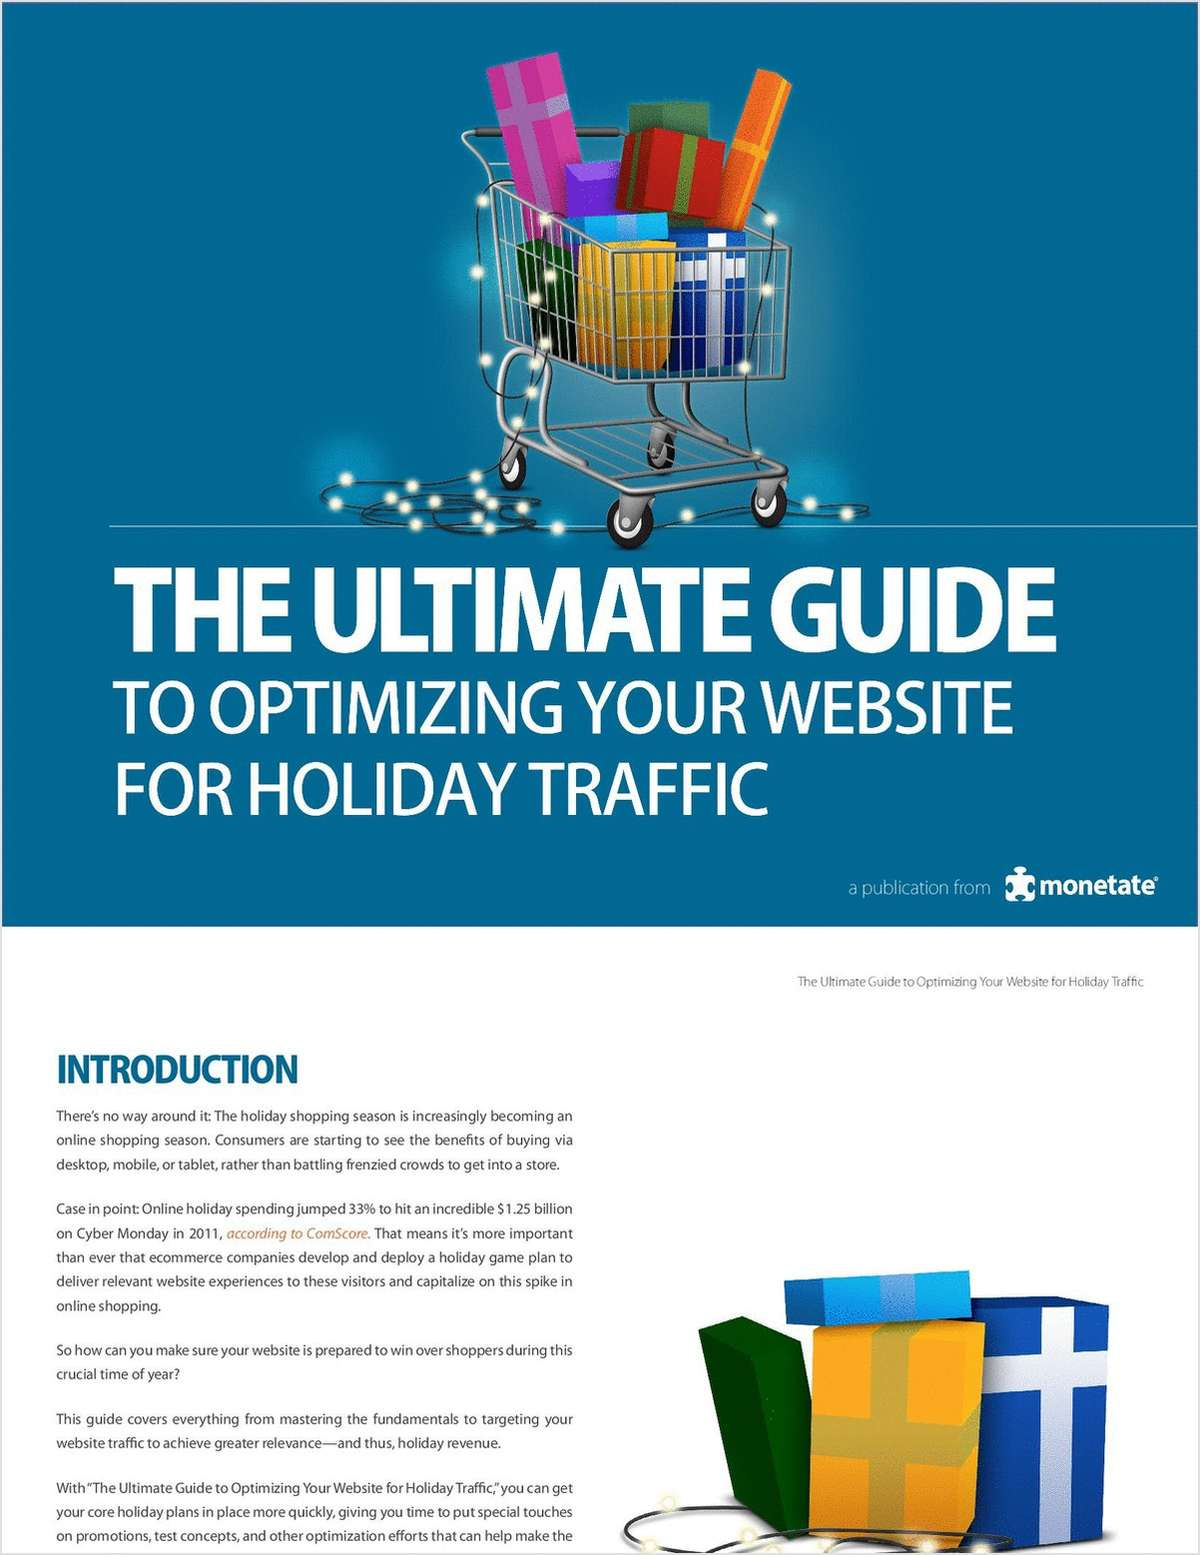 The Ultimate Guide to Optimizing Your Website for Holiday Traffic